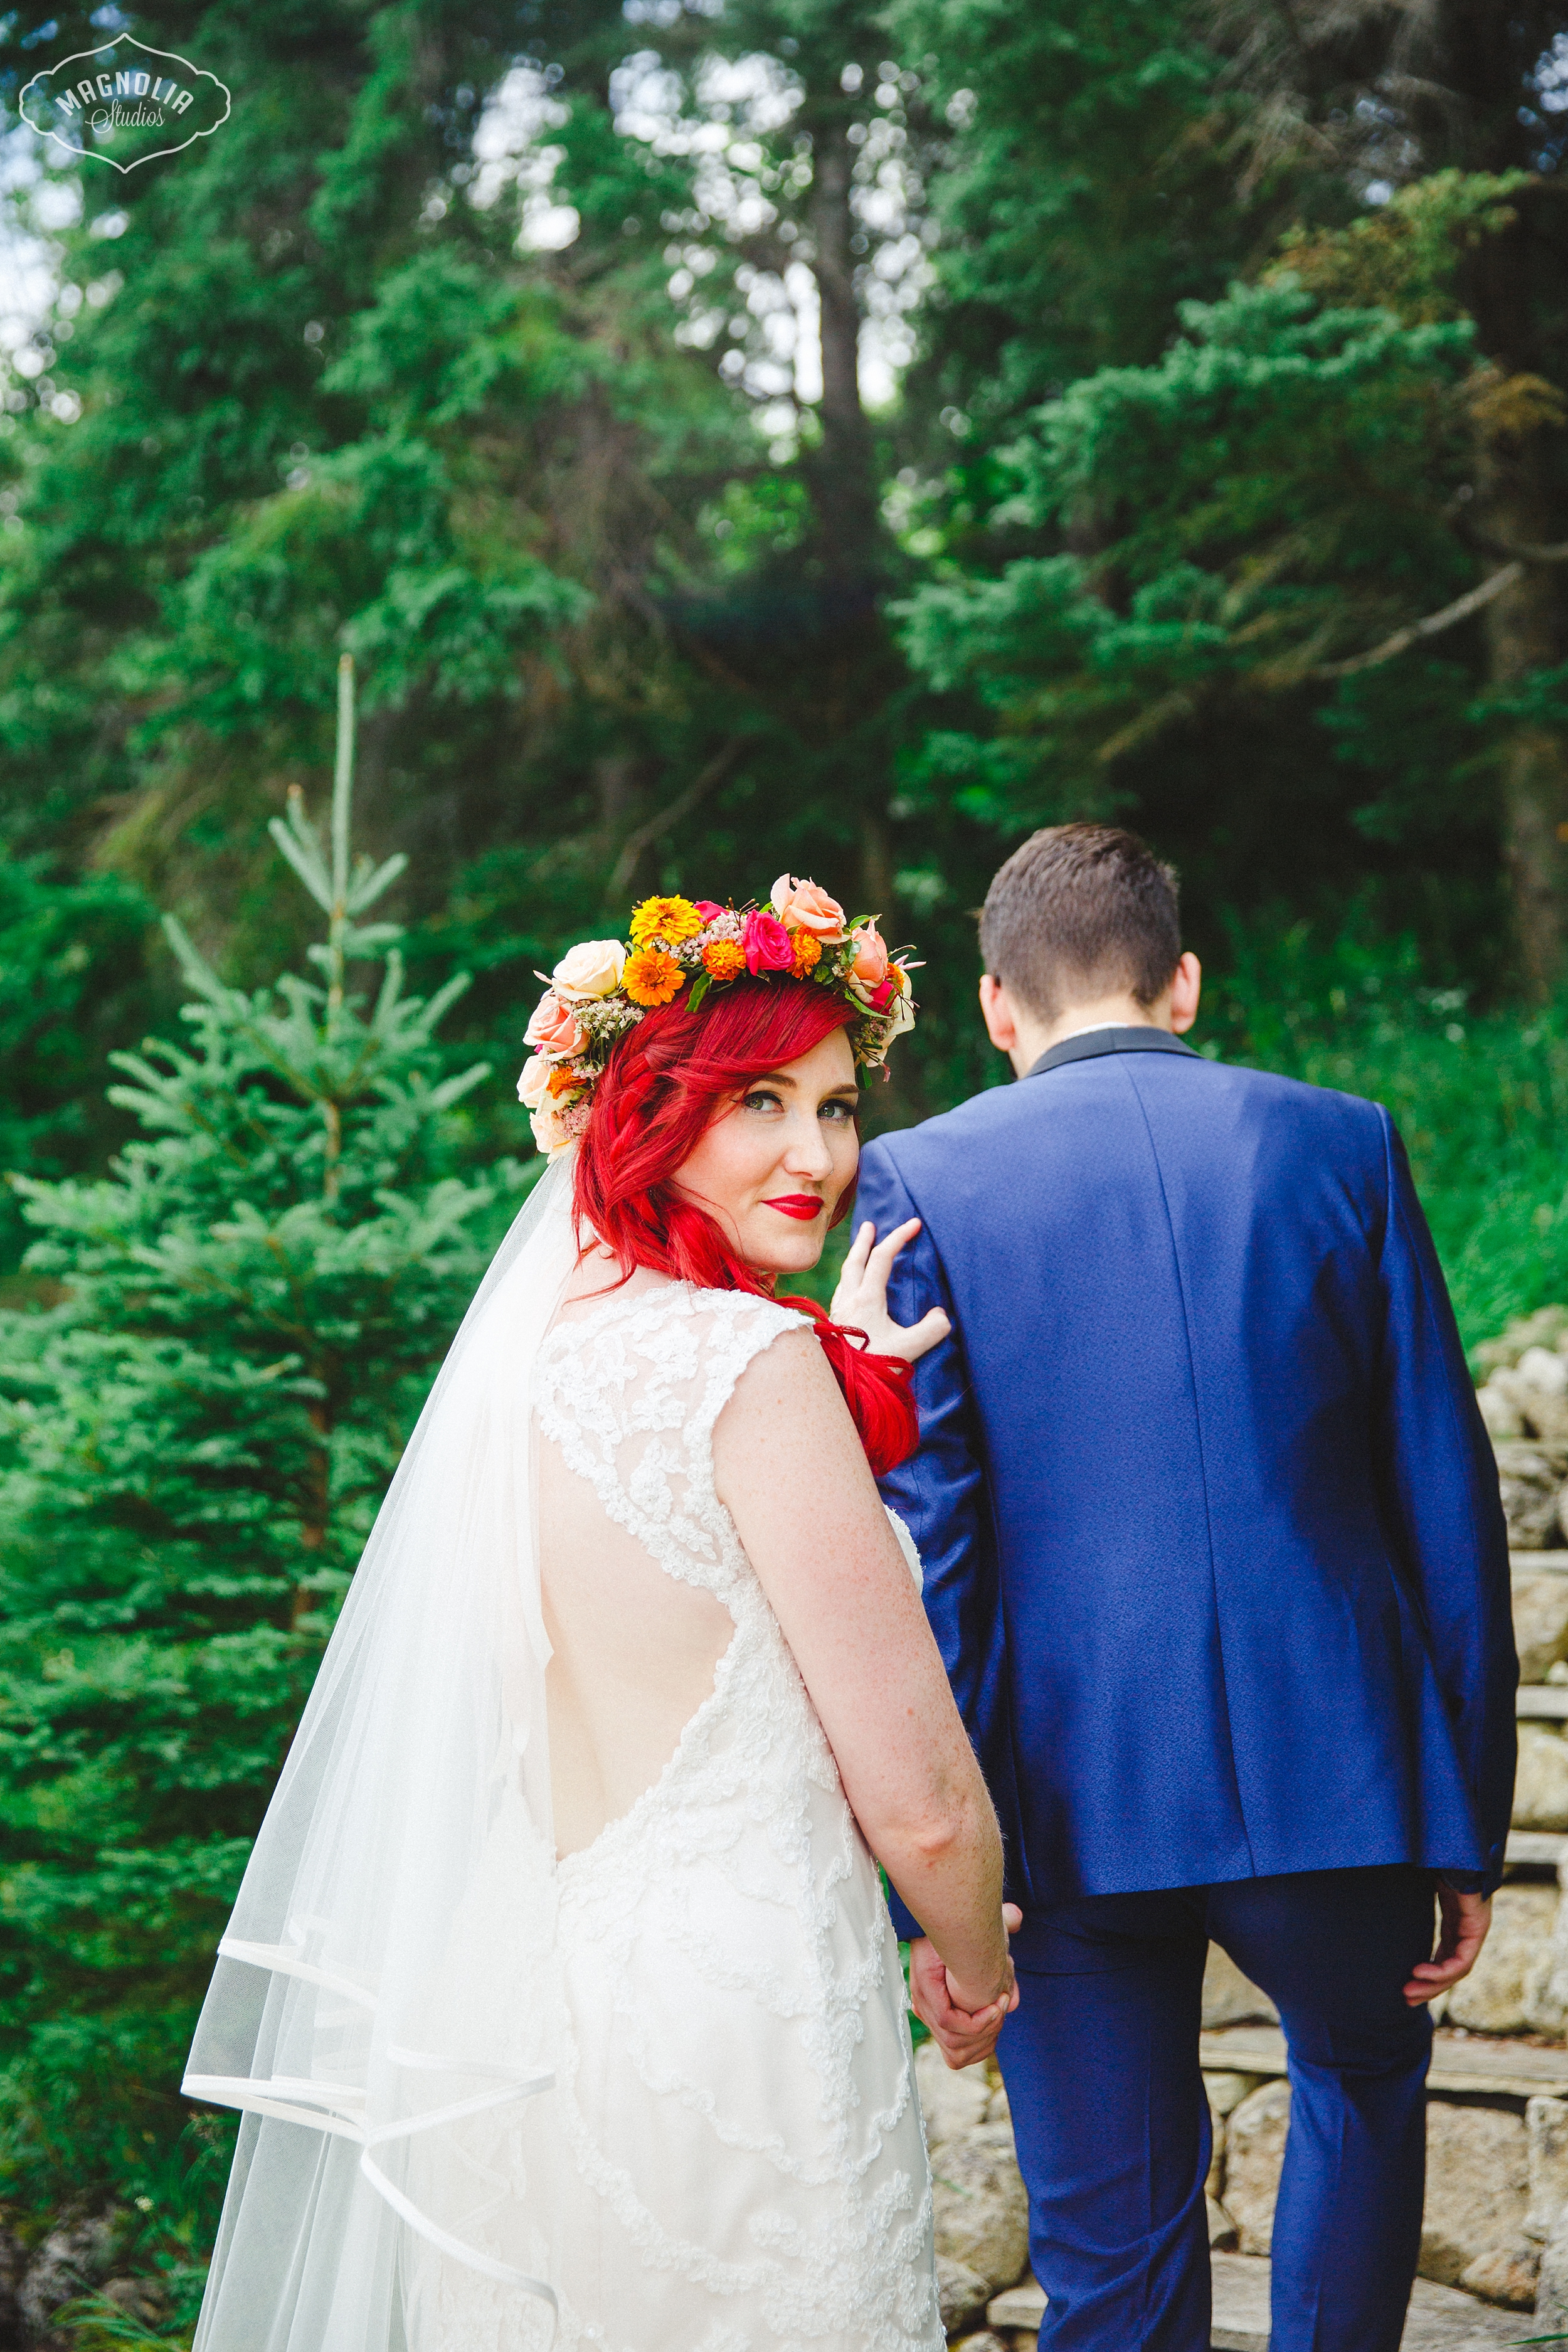 Colourful Bohemian Indie Wedding